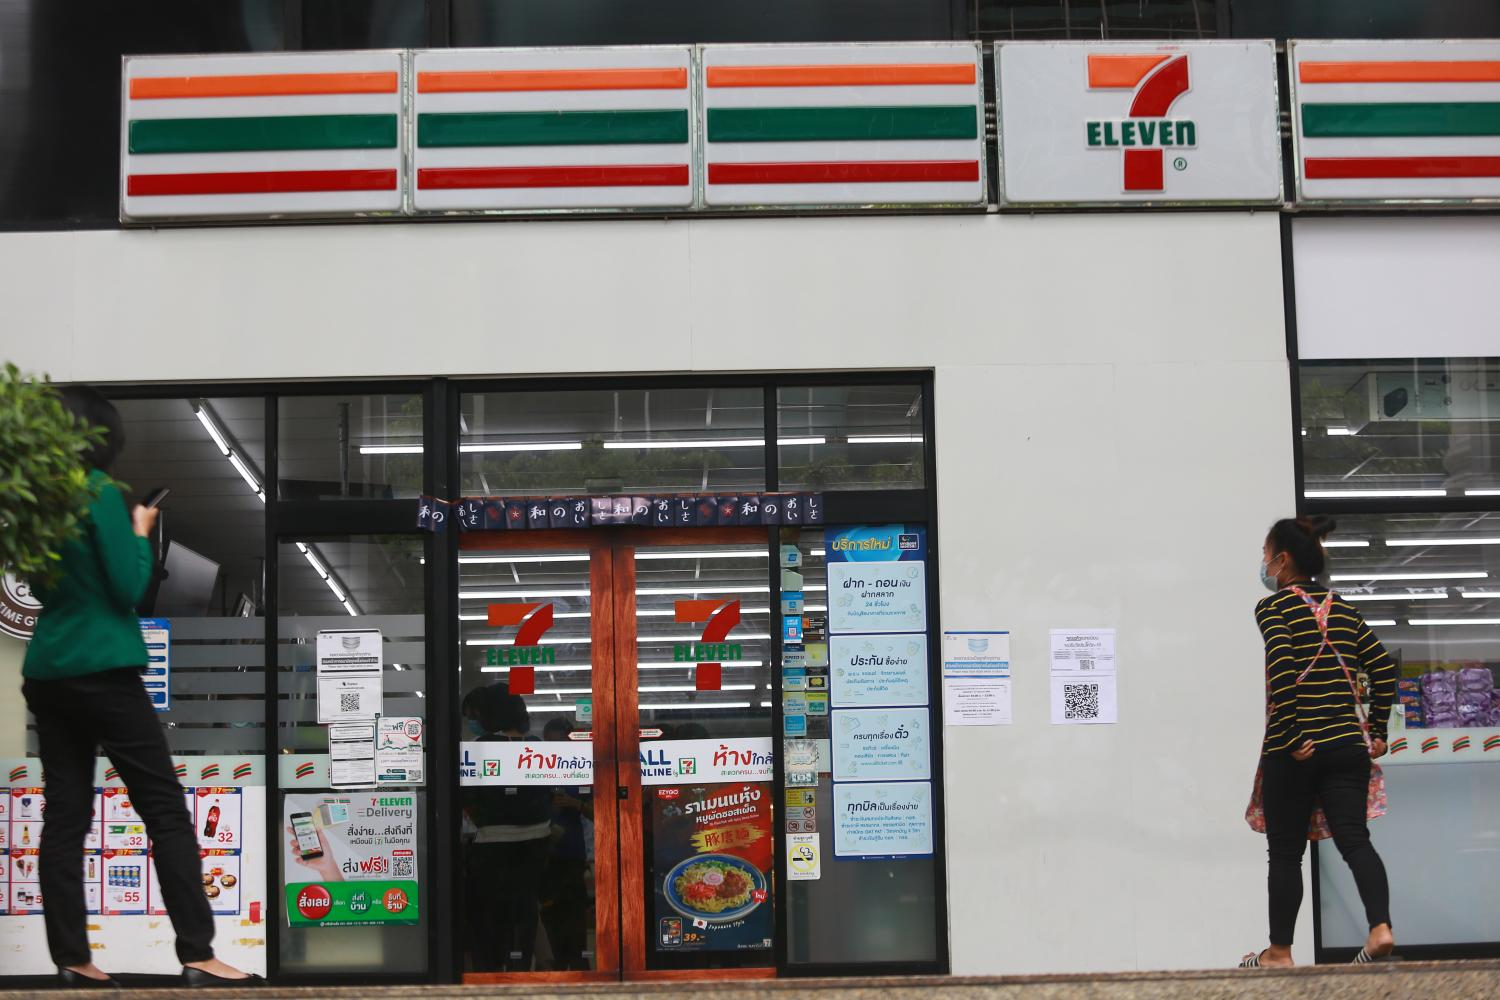 A 7-Eleven store in Bangkok is pictured during the pandemic. CP All operated 12,587 branches as of the first quarter this year. (Photo: Somchai Poomlard)